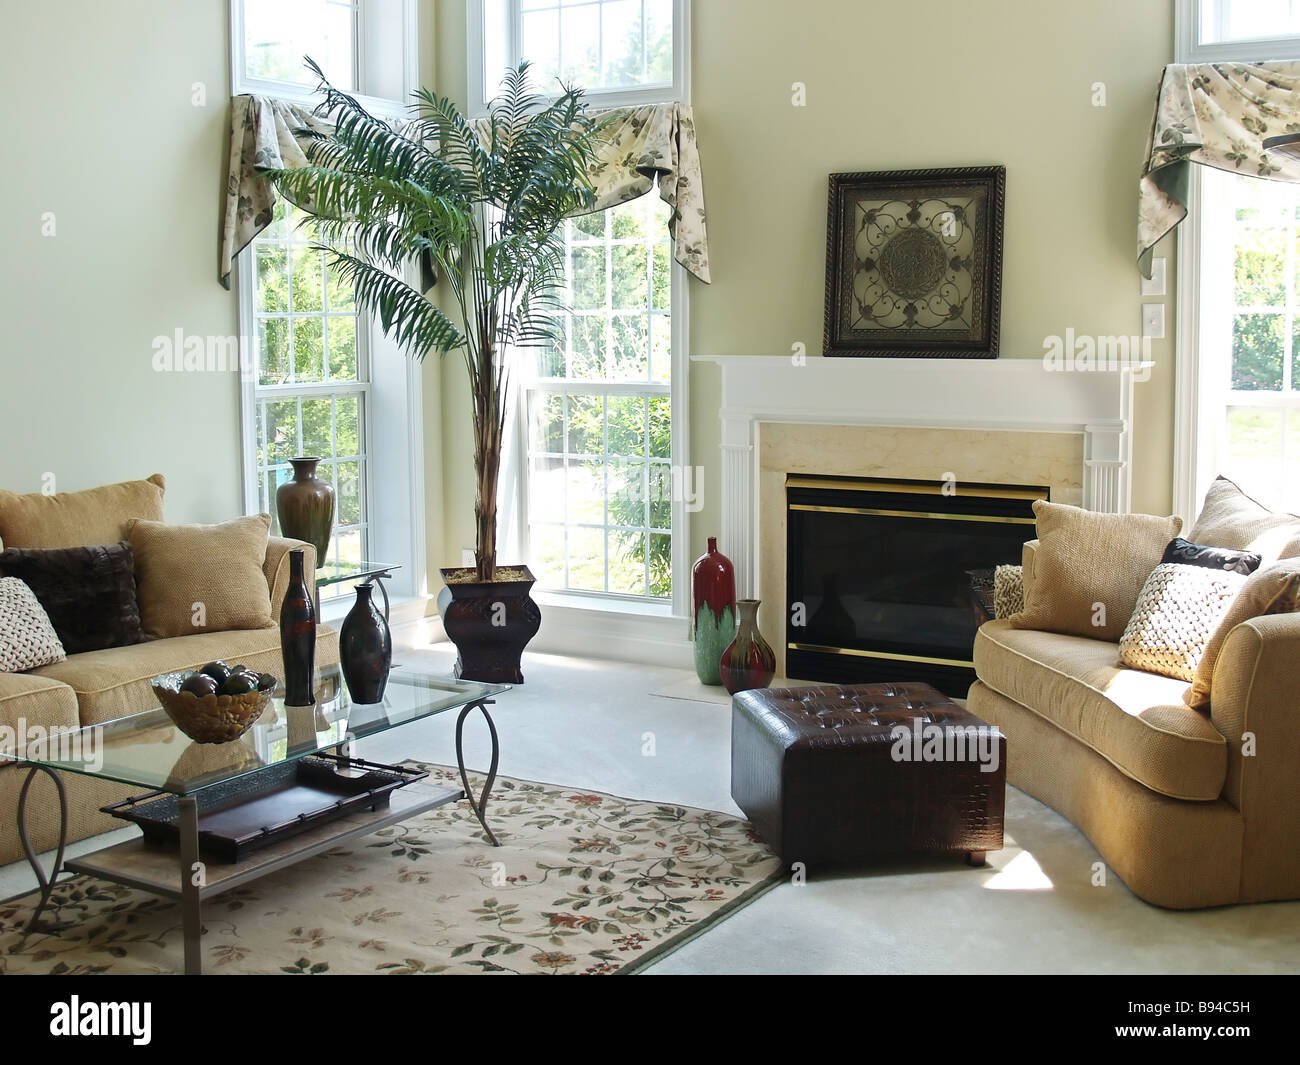 A well decorated family room in a modern american home - Stock Image